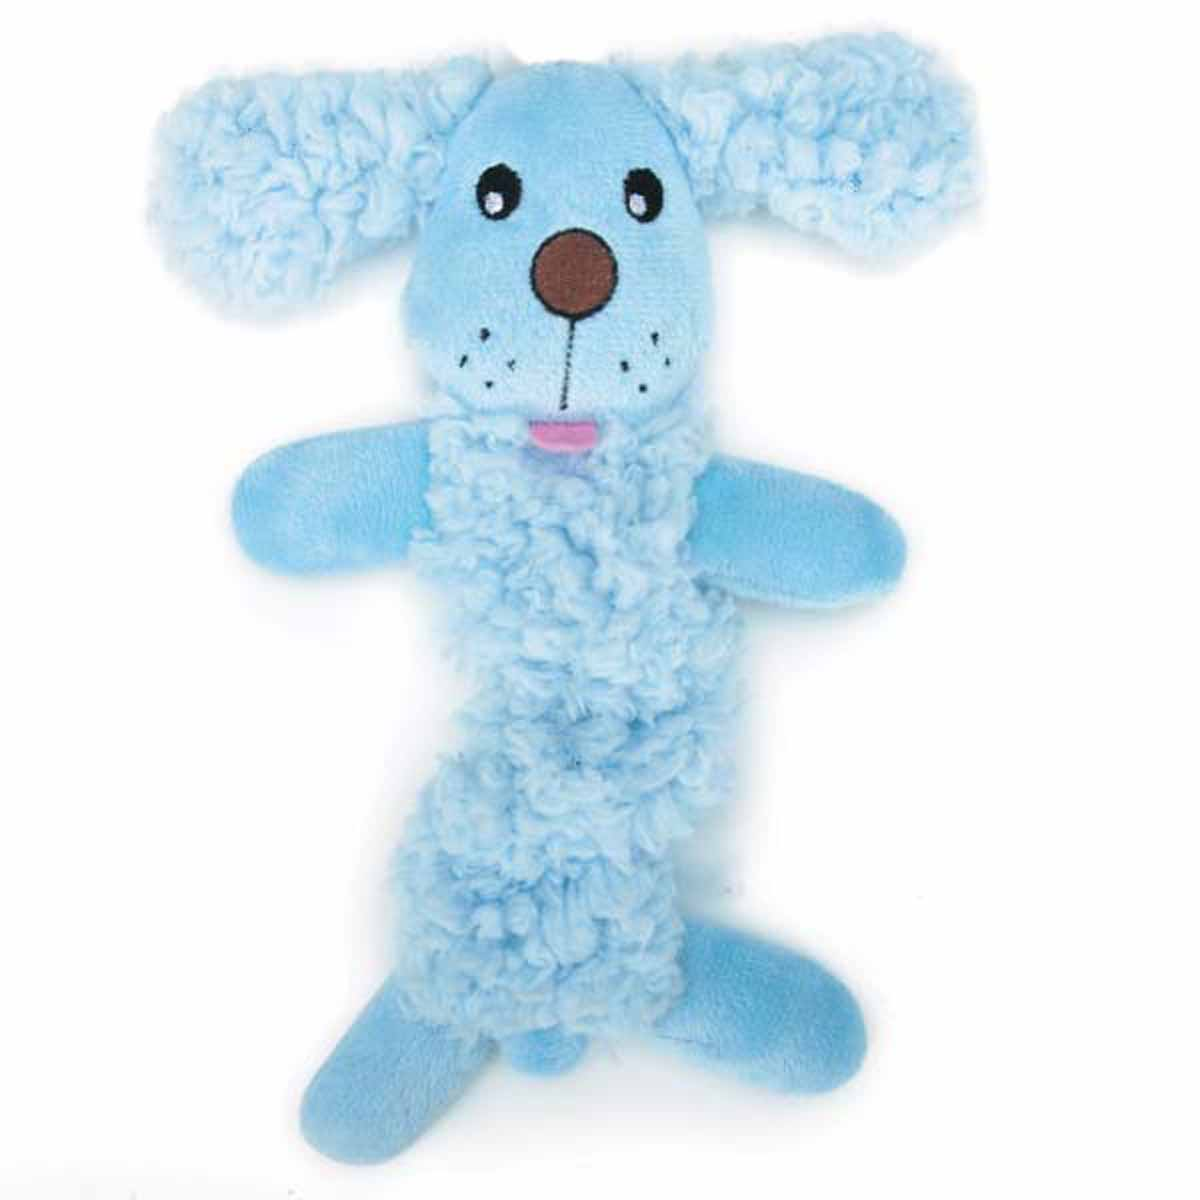 Grriggles Baby Bark Bungee Puppy Toy - Baby Blue